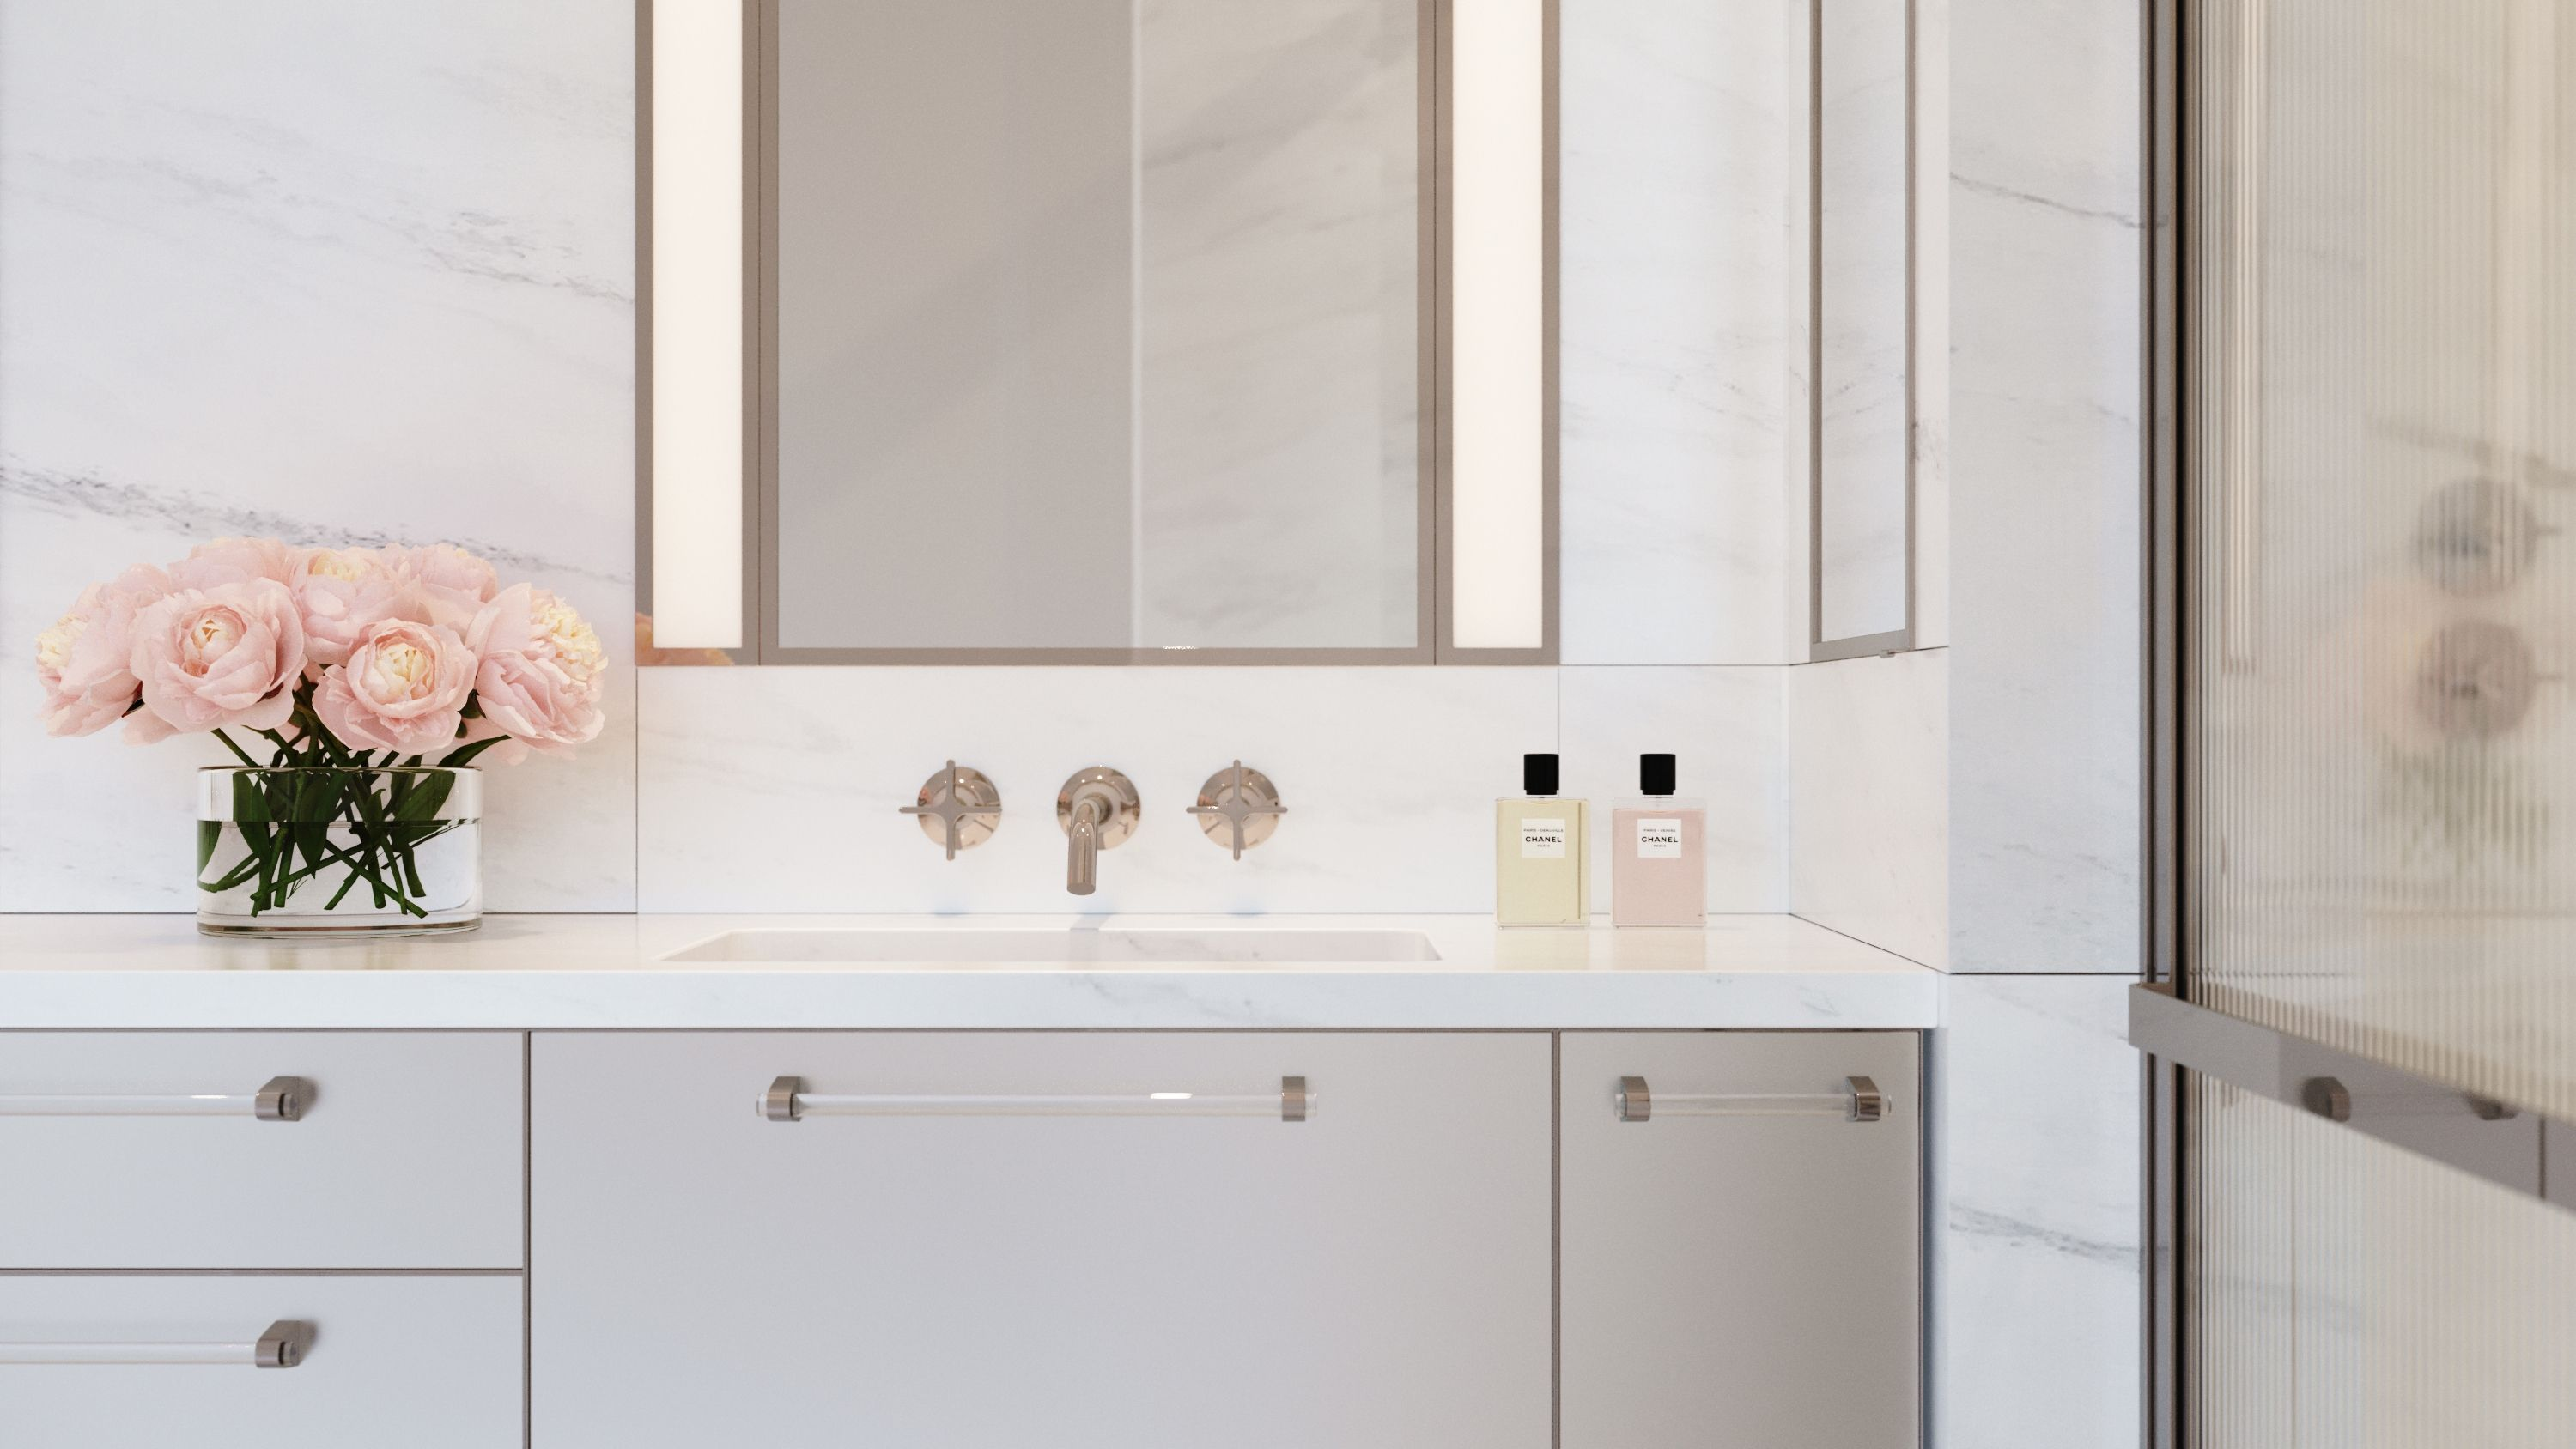 Luxurious details include Dornbracht Vaia fittings in polished nickel, custom recessed medicine cabinets, and vanities clad in acid etched glass